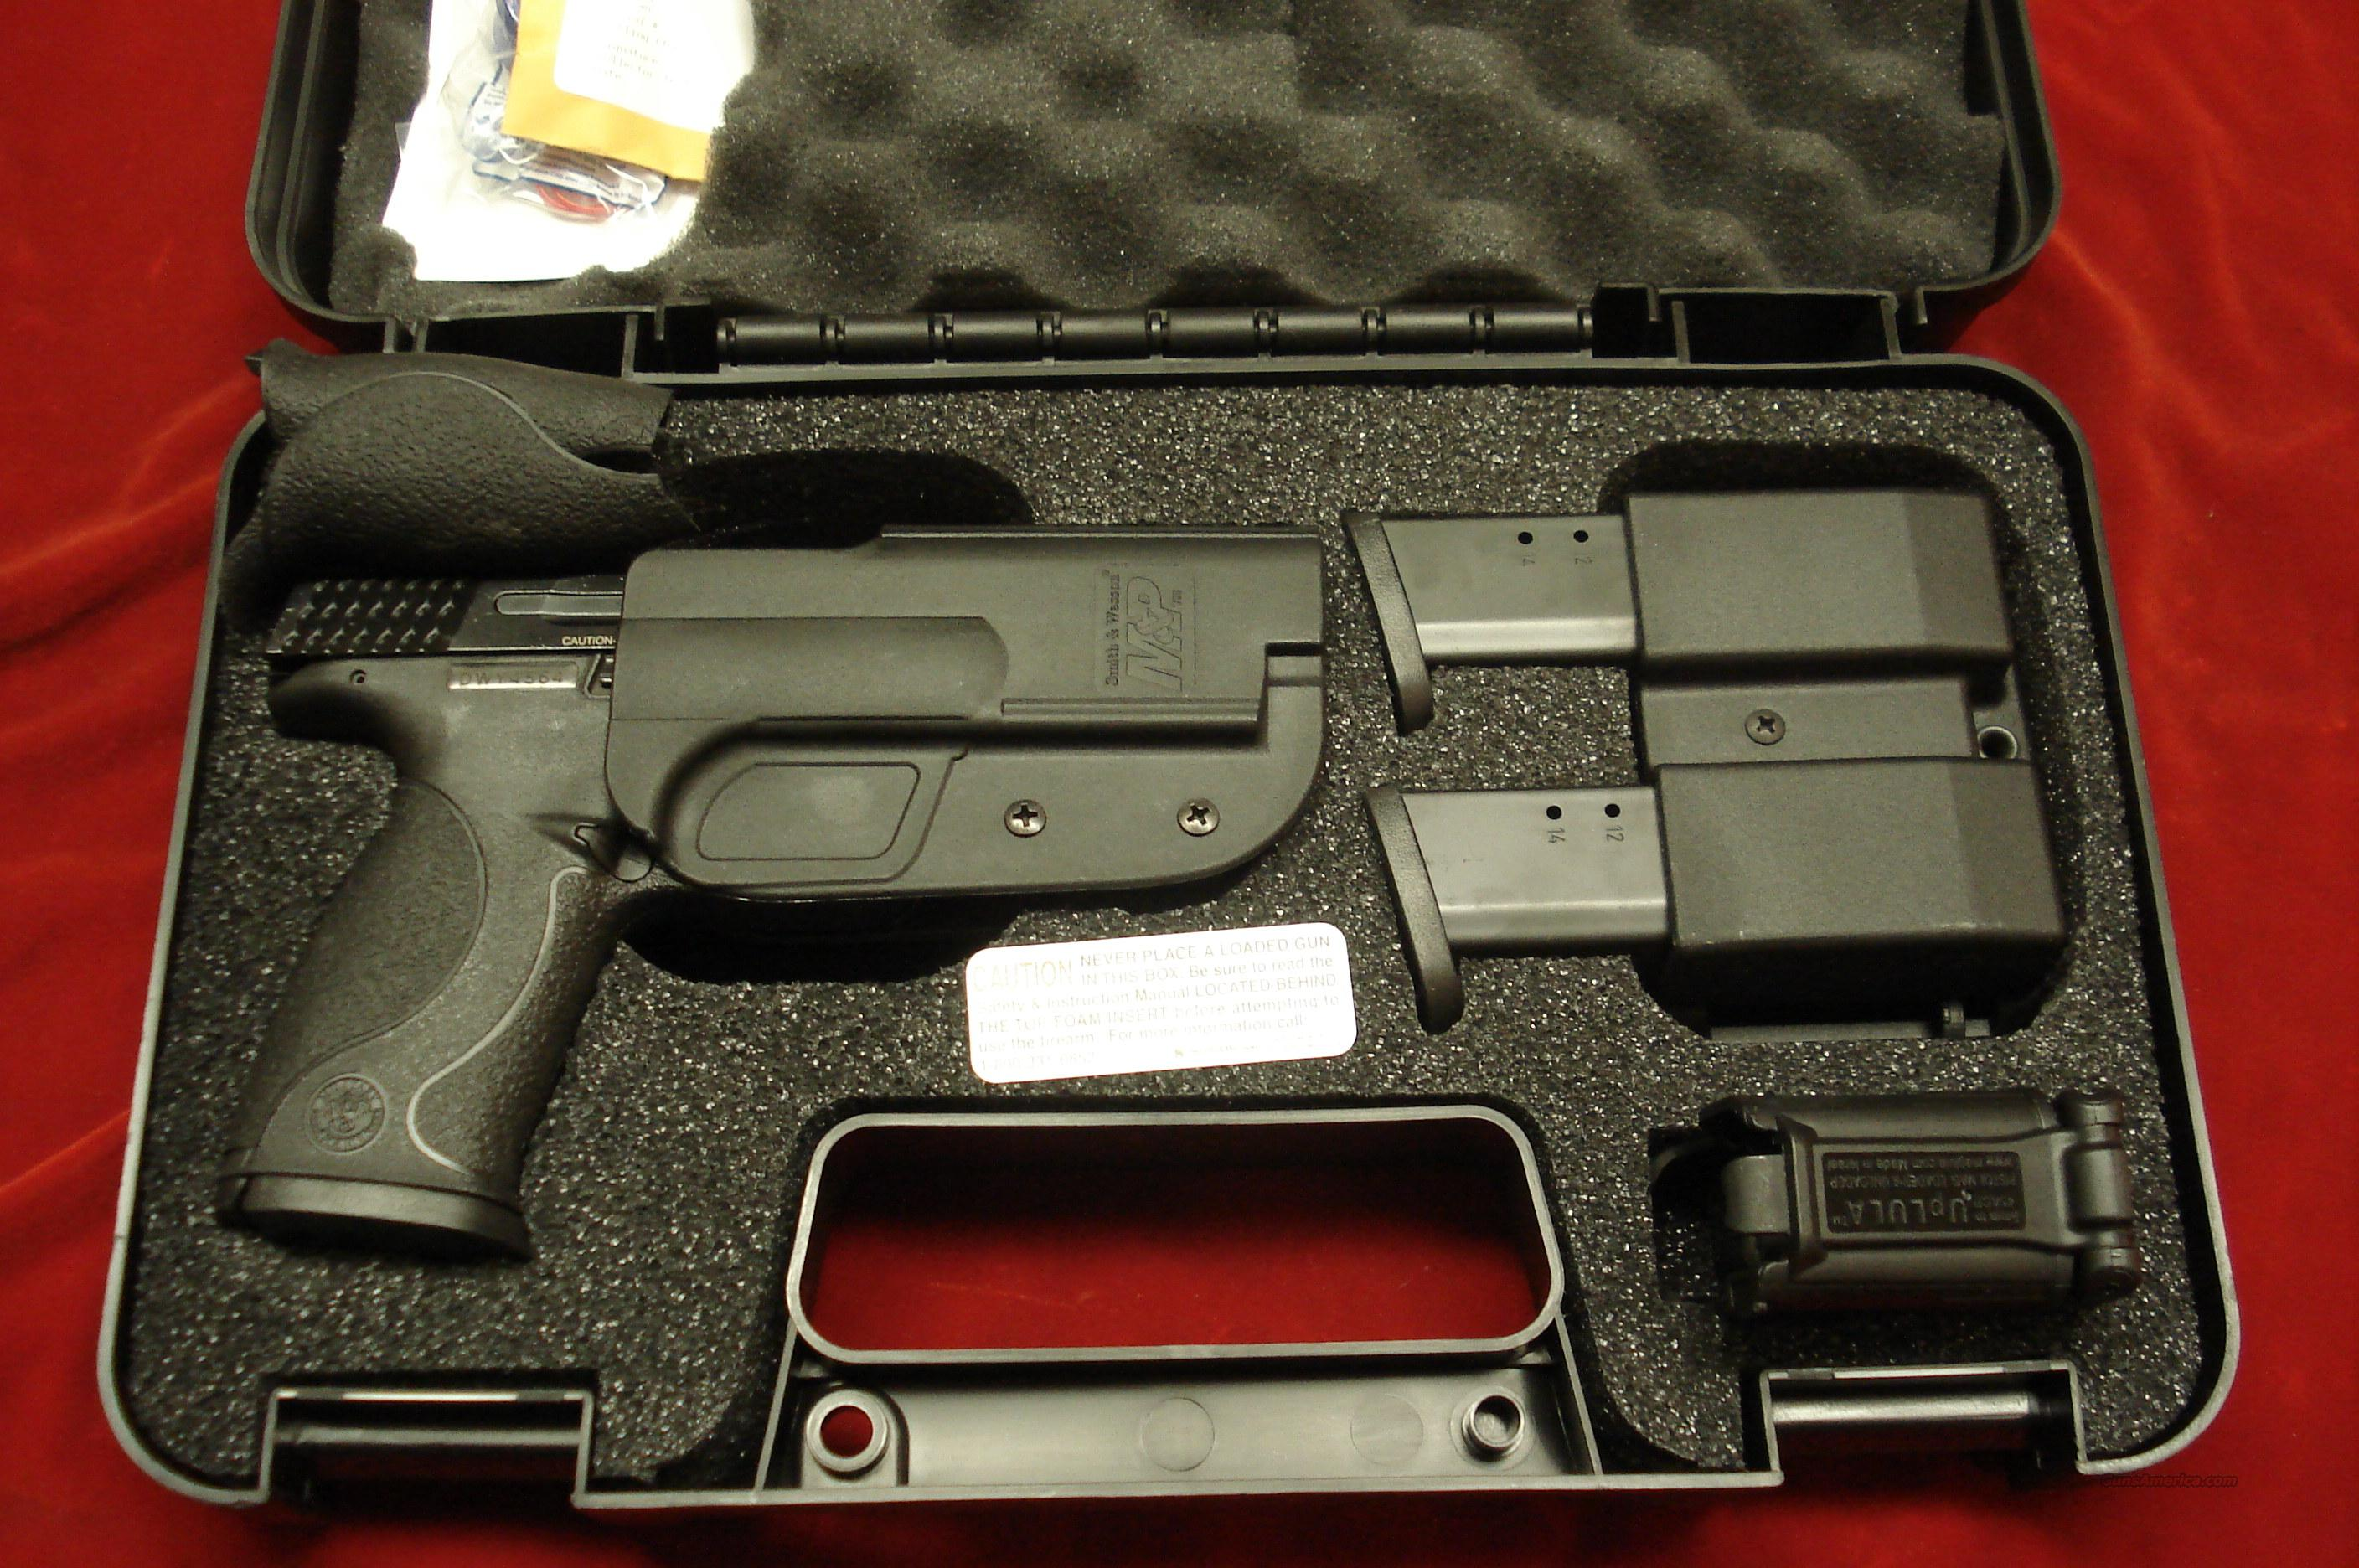 SMITH AND WESSON M&P 40 CARRY AND RANGE KIT NEW   (209330)   Guns > Pistols > Smith & Wesson Pistols - Autos > Polymer Frame